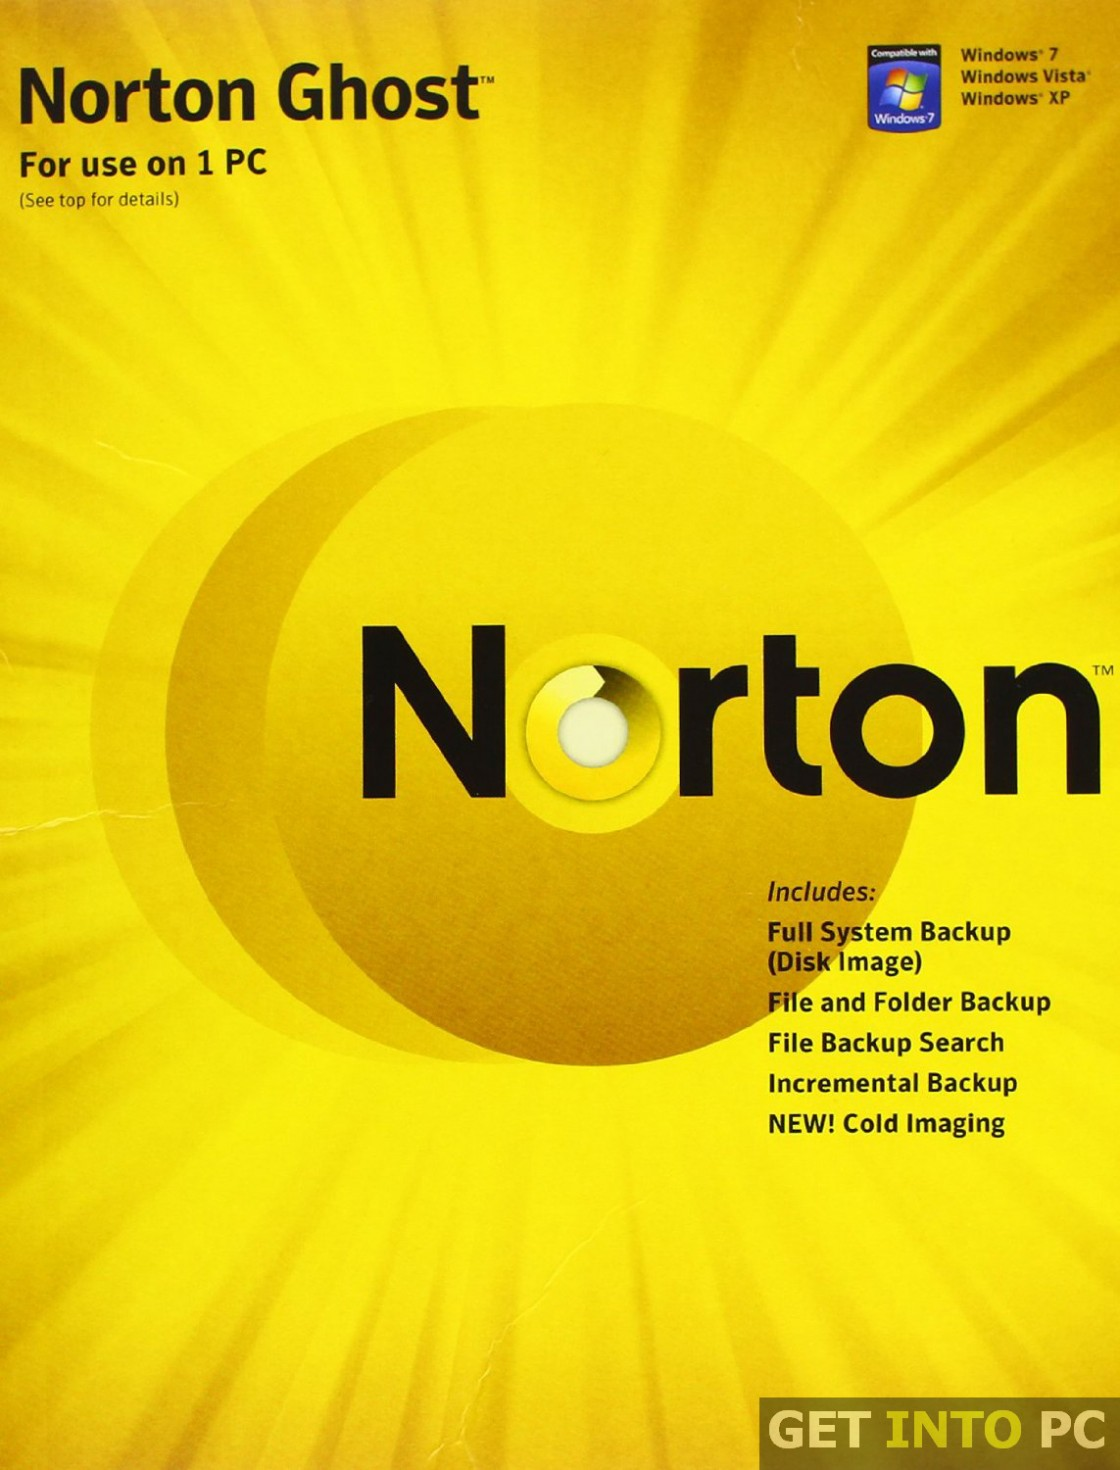 Norton Ghost 15 Free Download